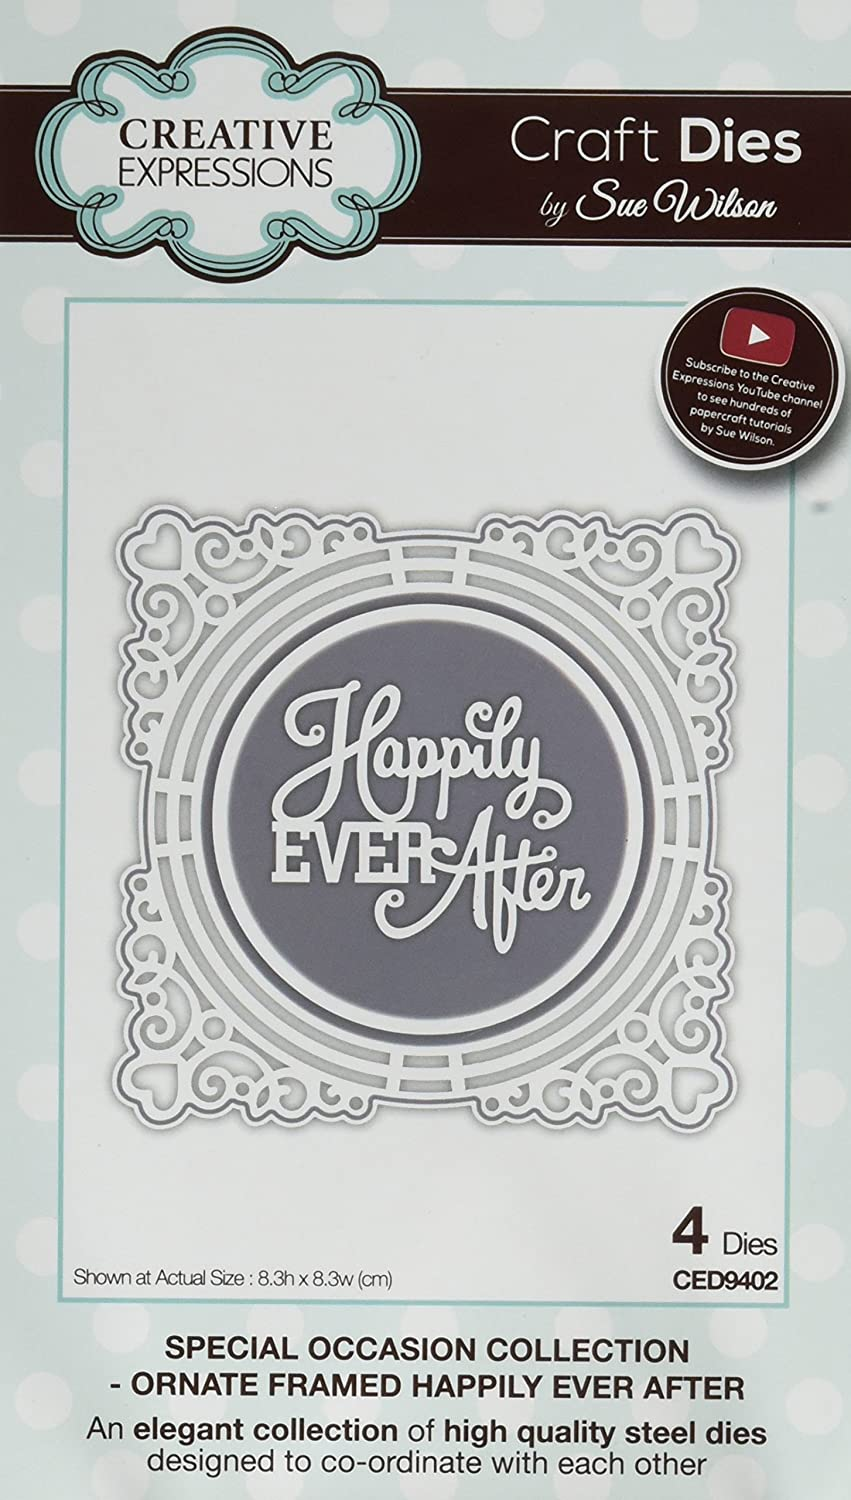 Sue Wilson CED9402 Special Occasion Ornate Framed Happily Ever After Dies Ecstasy Crafts Inc